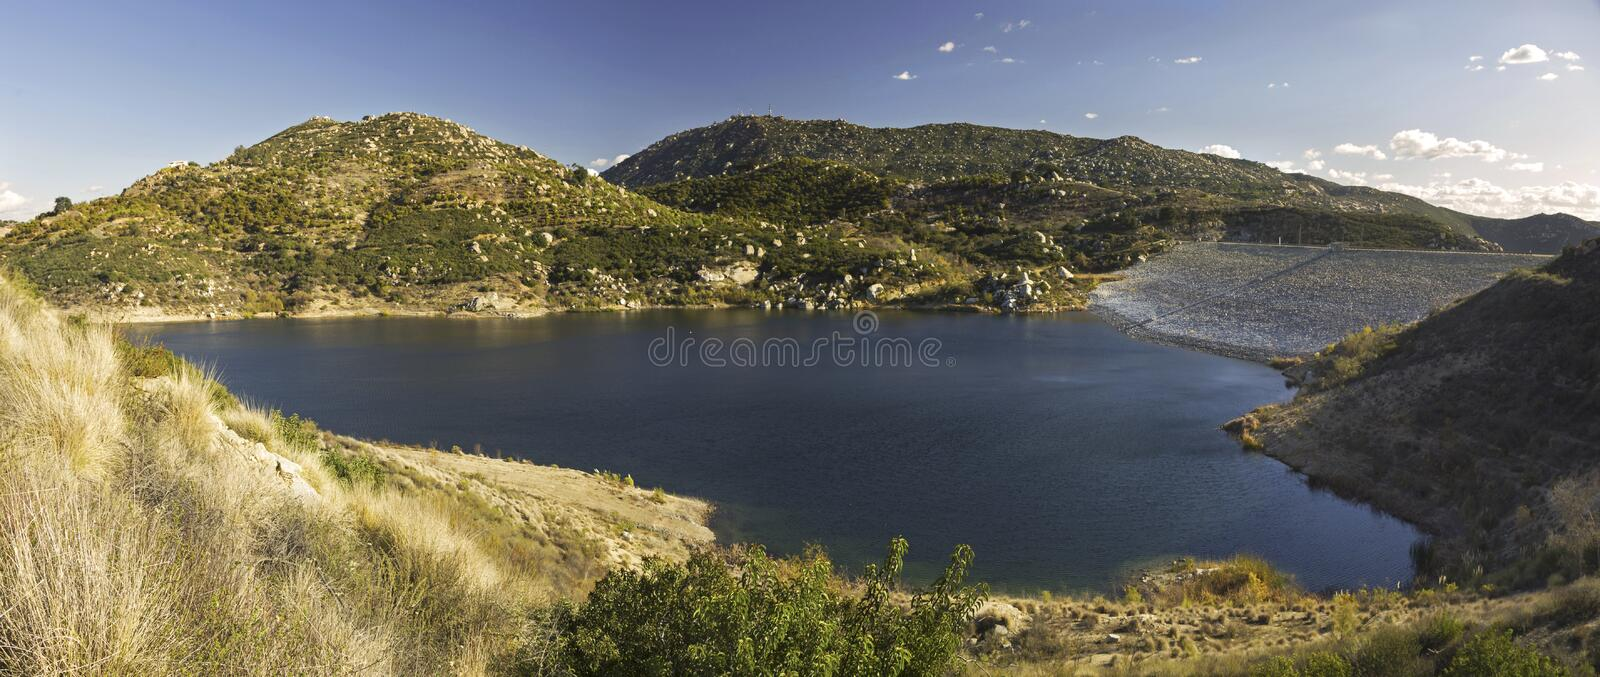 Lake Ramona Panorama Blue Sky Preserve Poway San Diego County Inland. Scenic Wide Panoramic Landscape of Lake Ramona Reservoir and Distant Mountains in Blue Sky royalty free stock photos